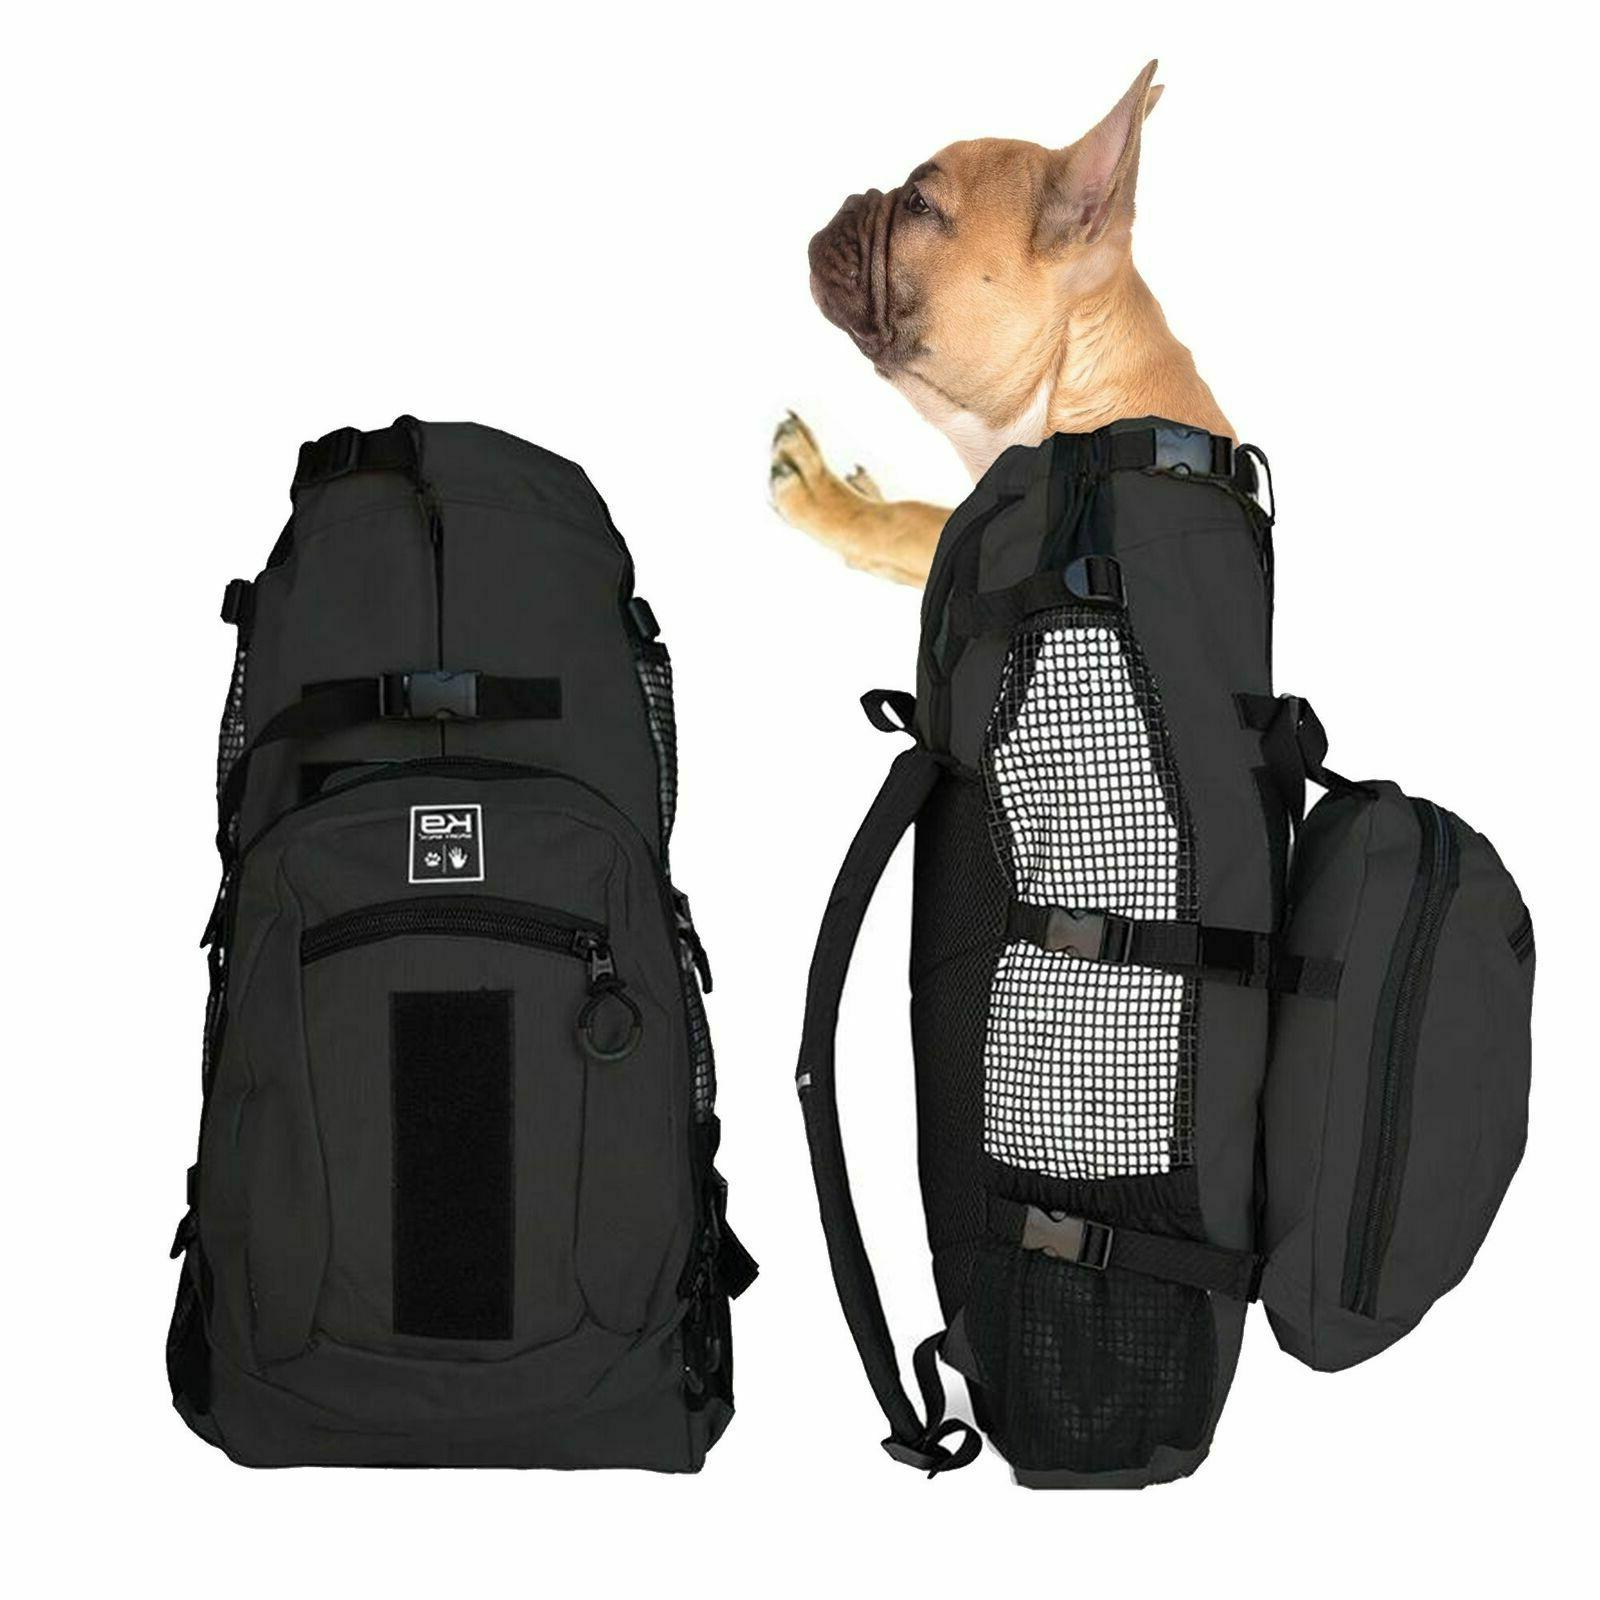 air plus dog carrier backpack for pets